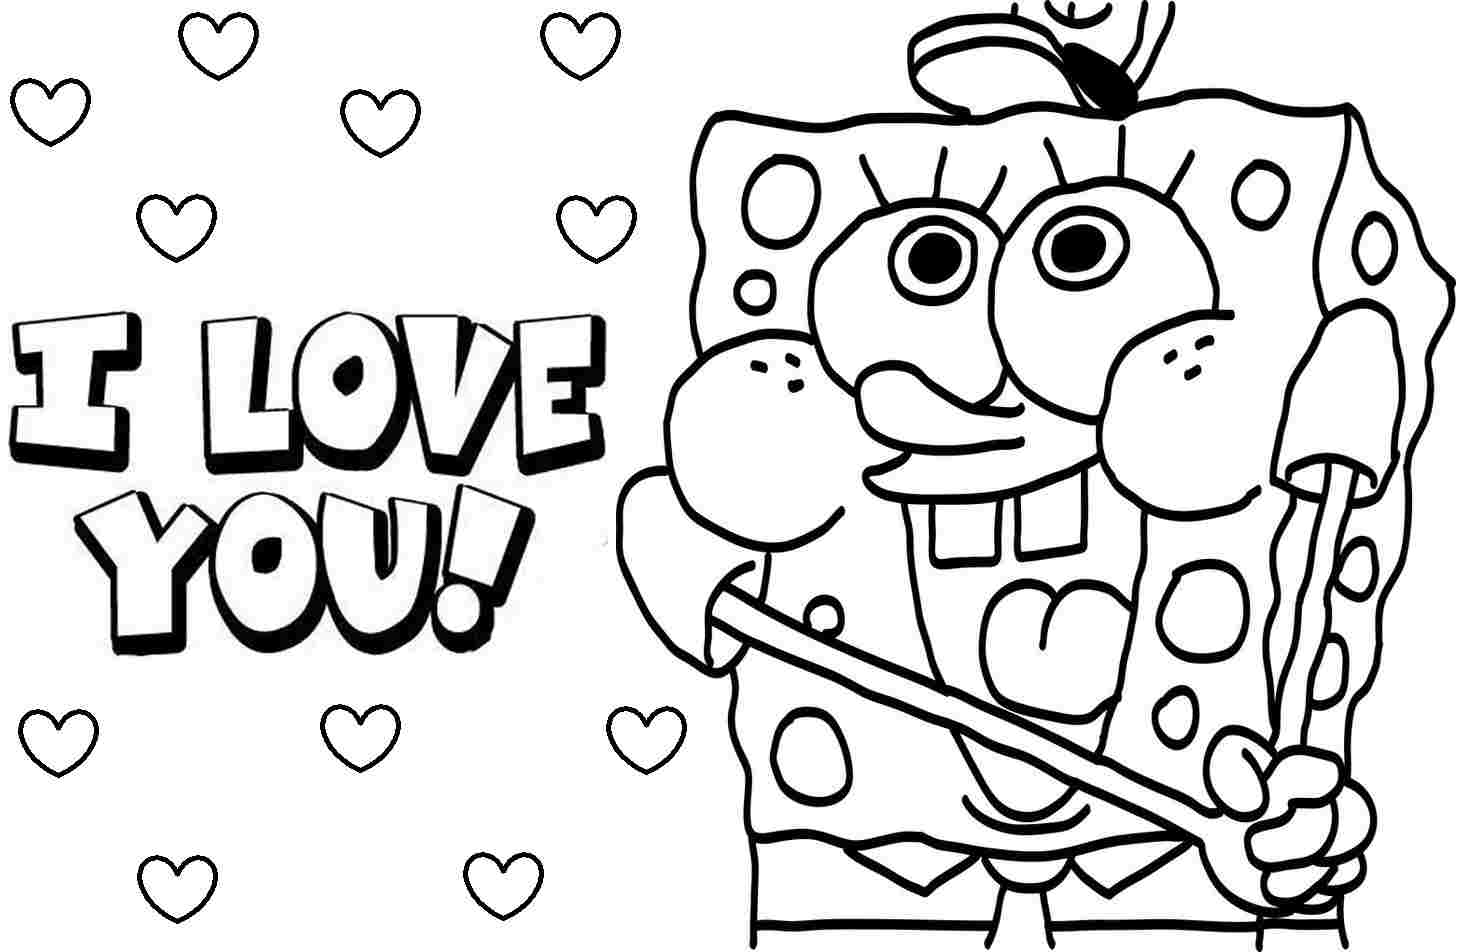 spongebob fun coloring pages - photo#12